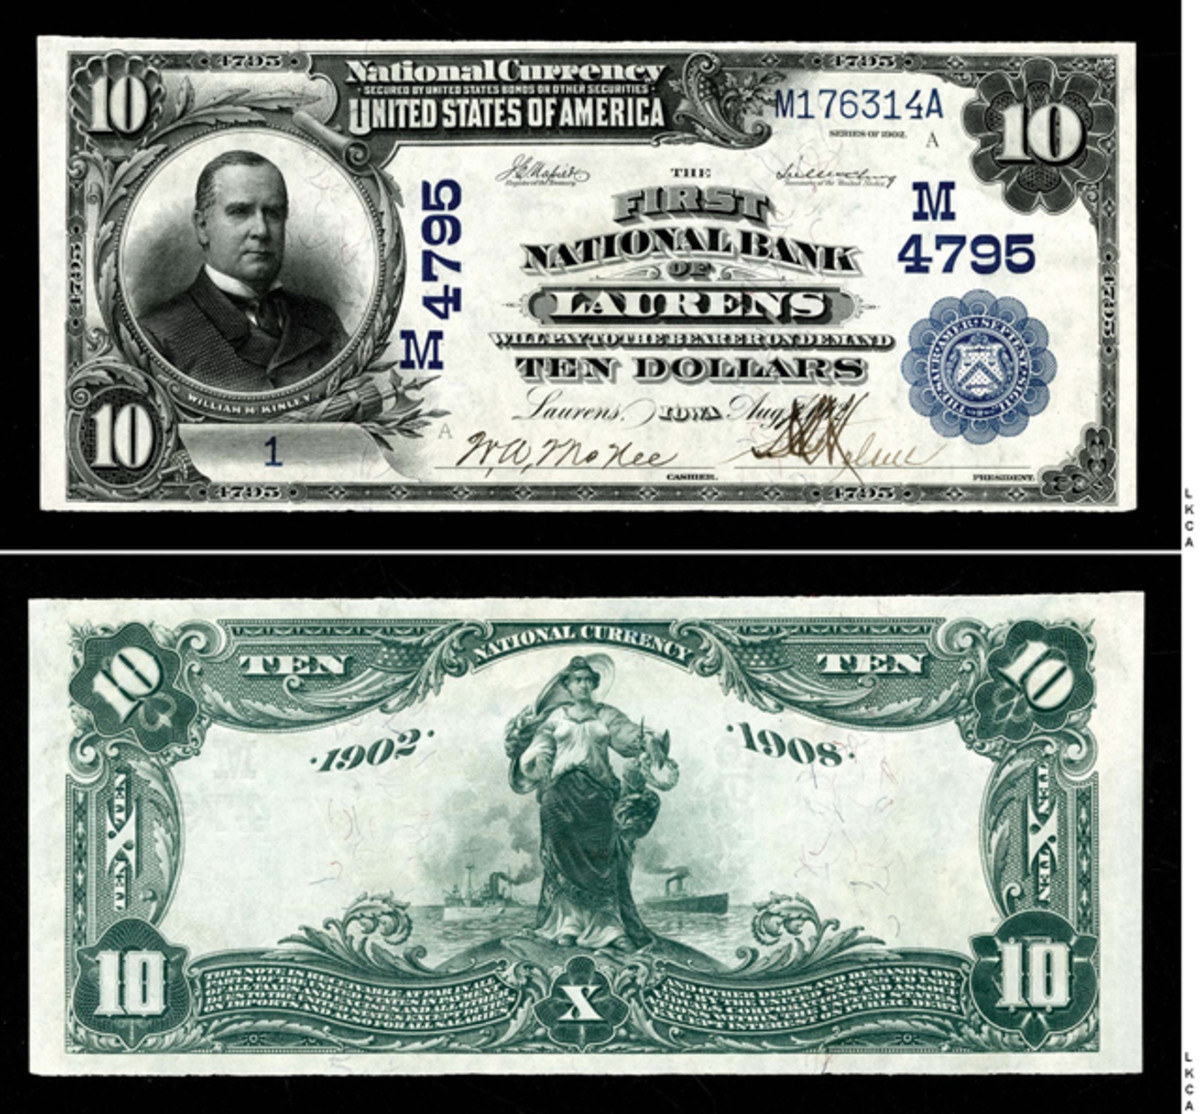 No. 1 1902 Date Back Blue Seal $10 from The First National Bank of Laurens, Iowa, M4795